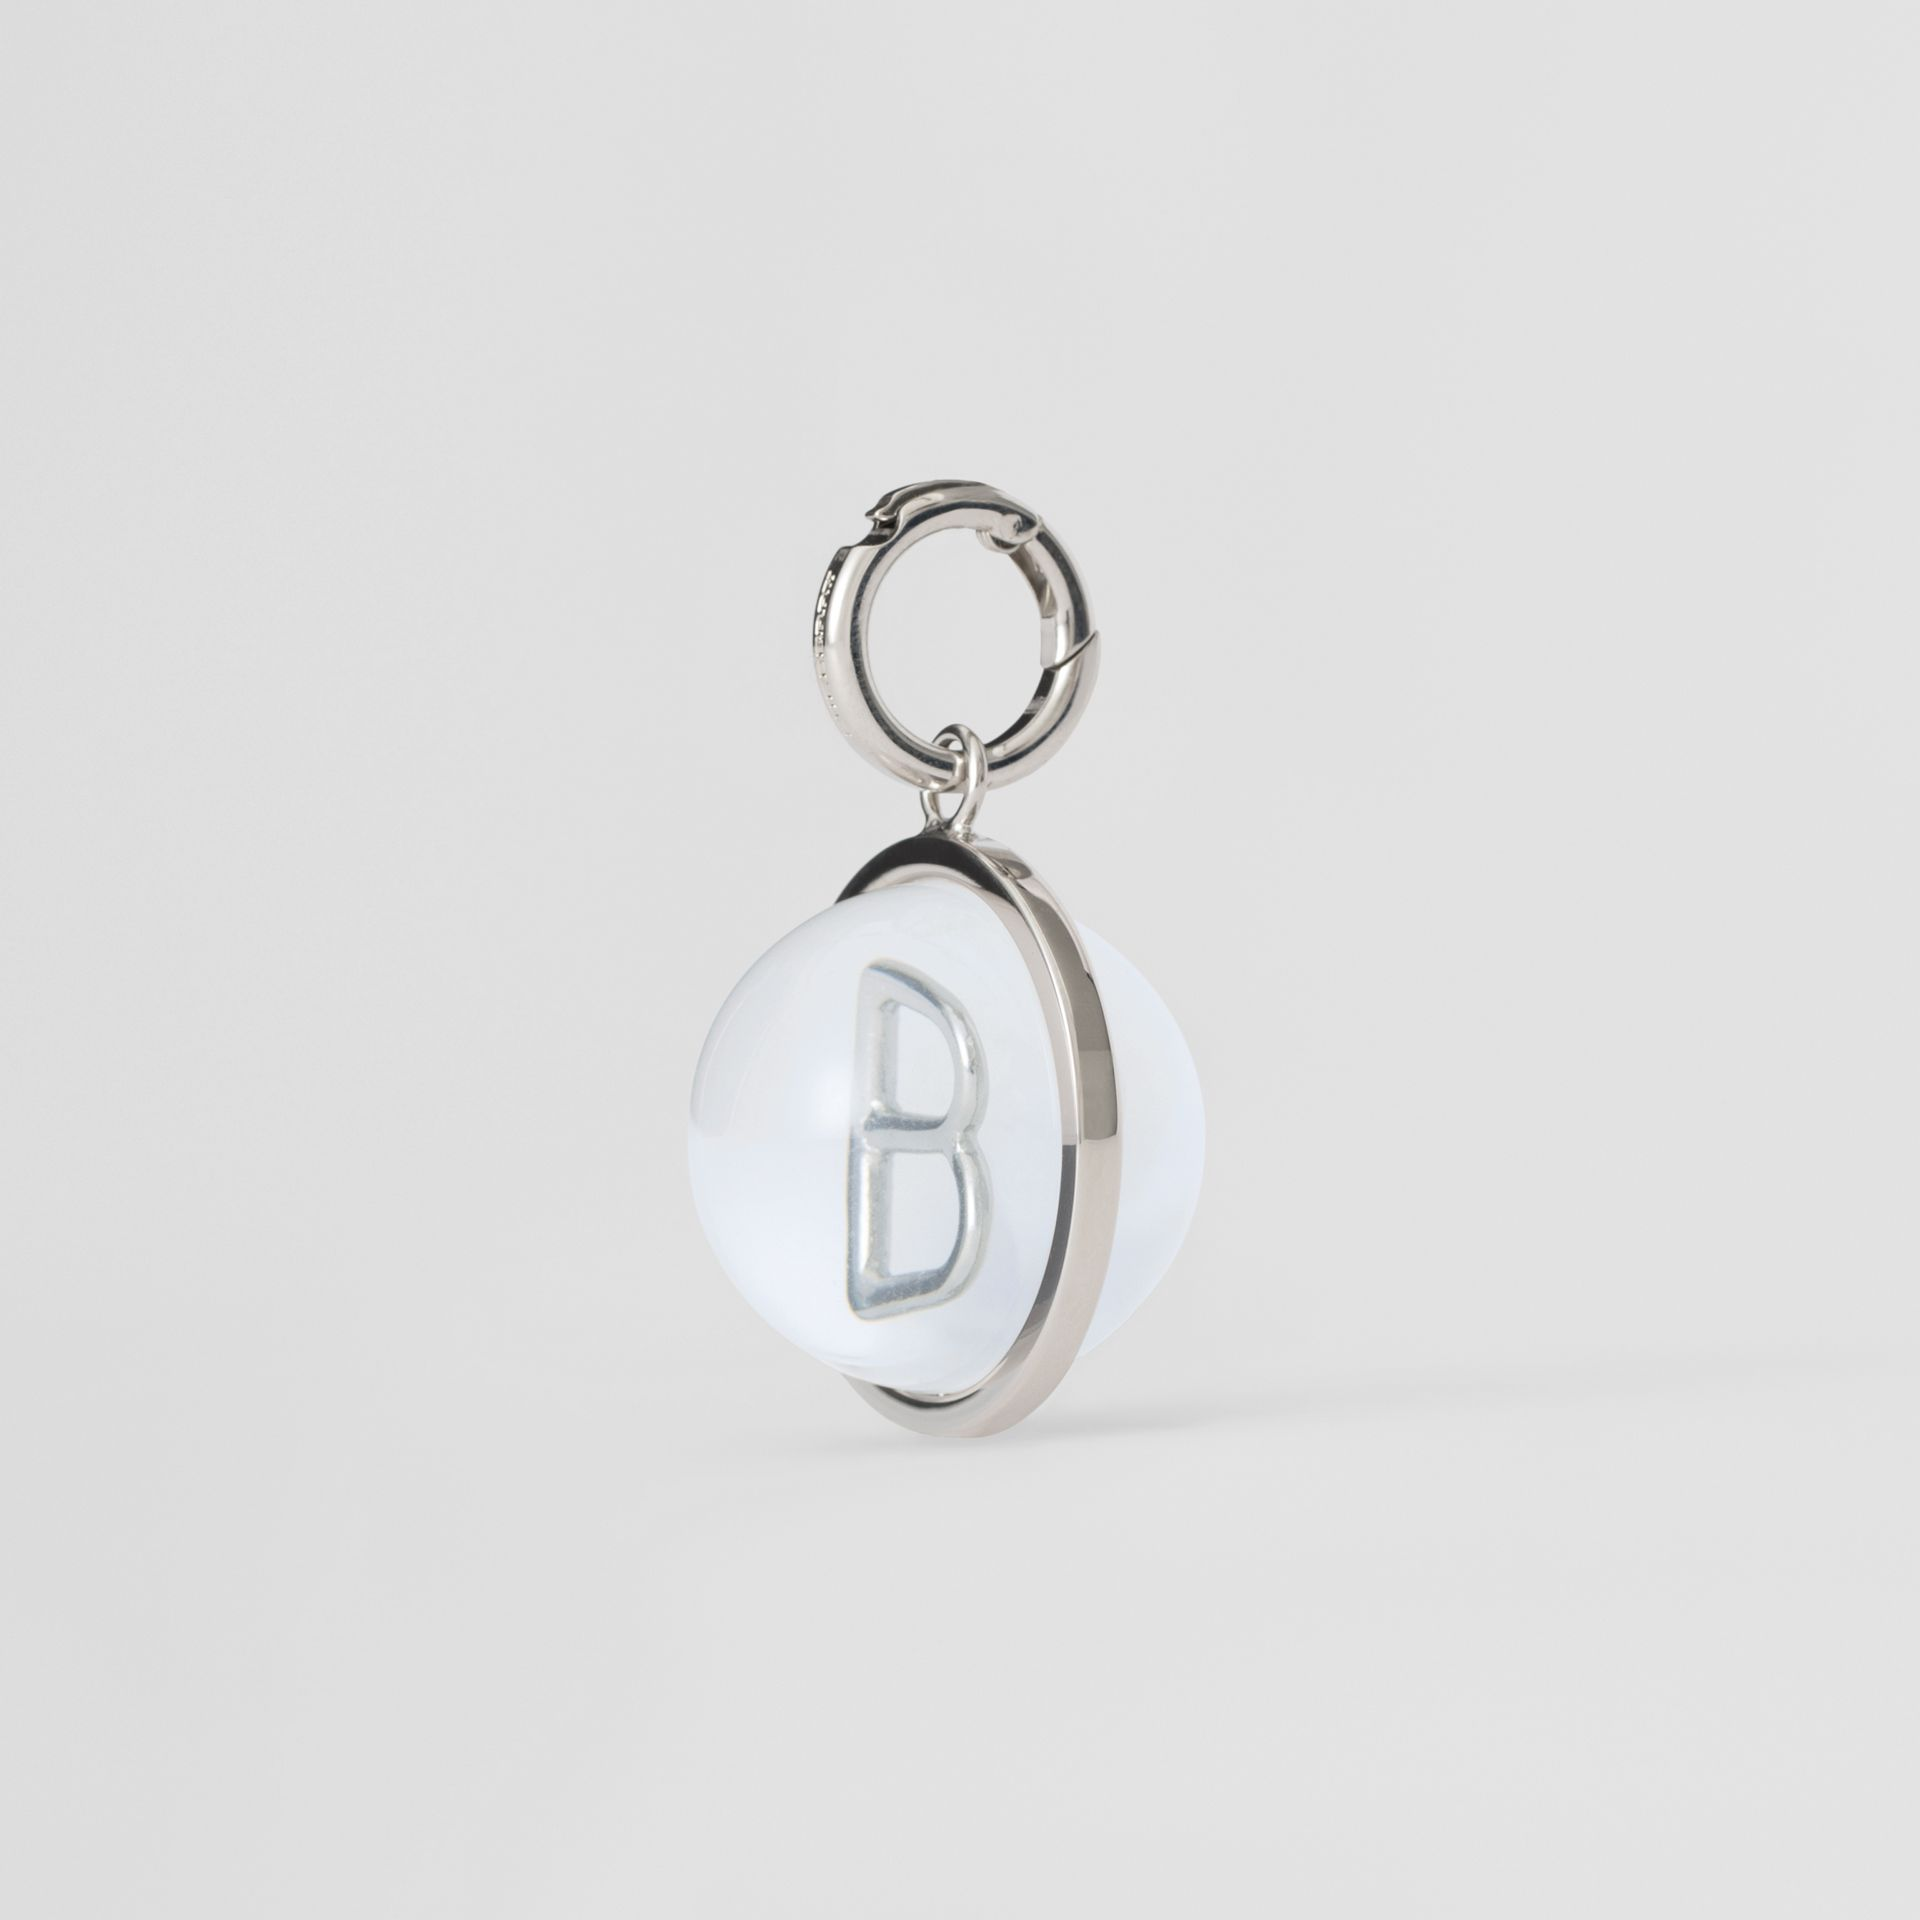 Marbled Resin 'B' Alphabet Charm in Palladio/nacre - Women | Burberry United States - gallery image 4